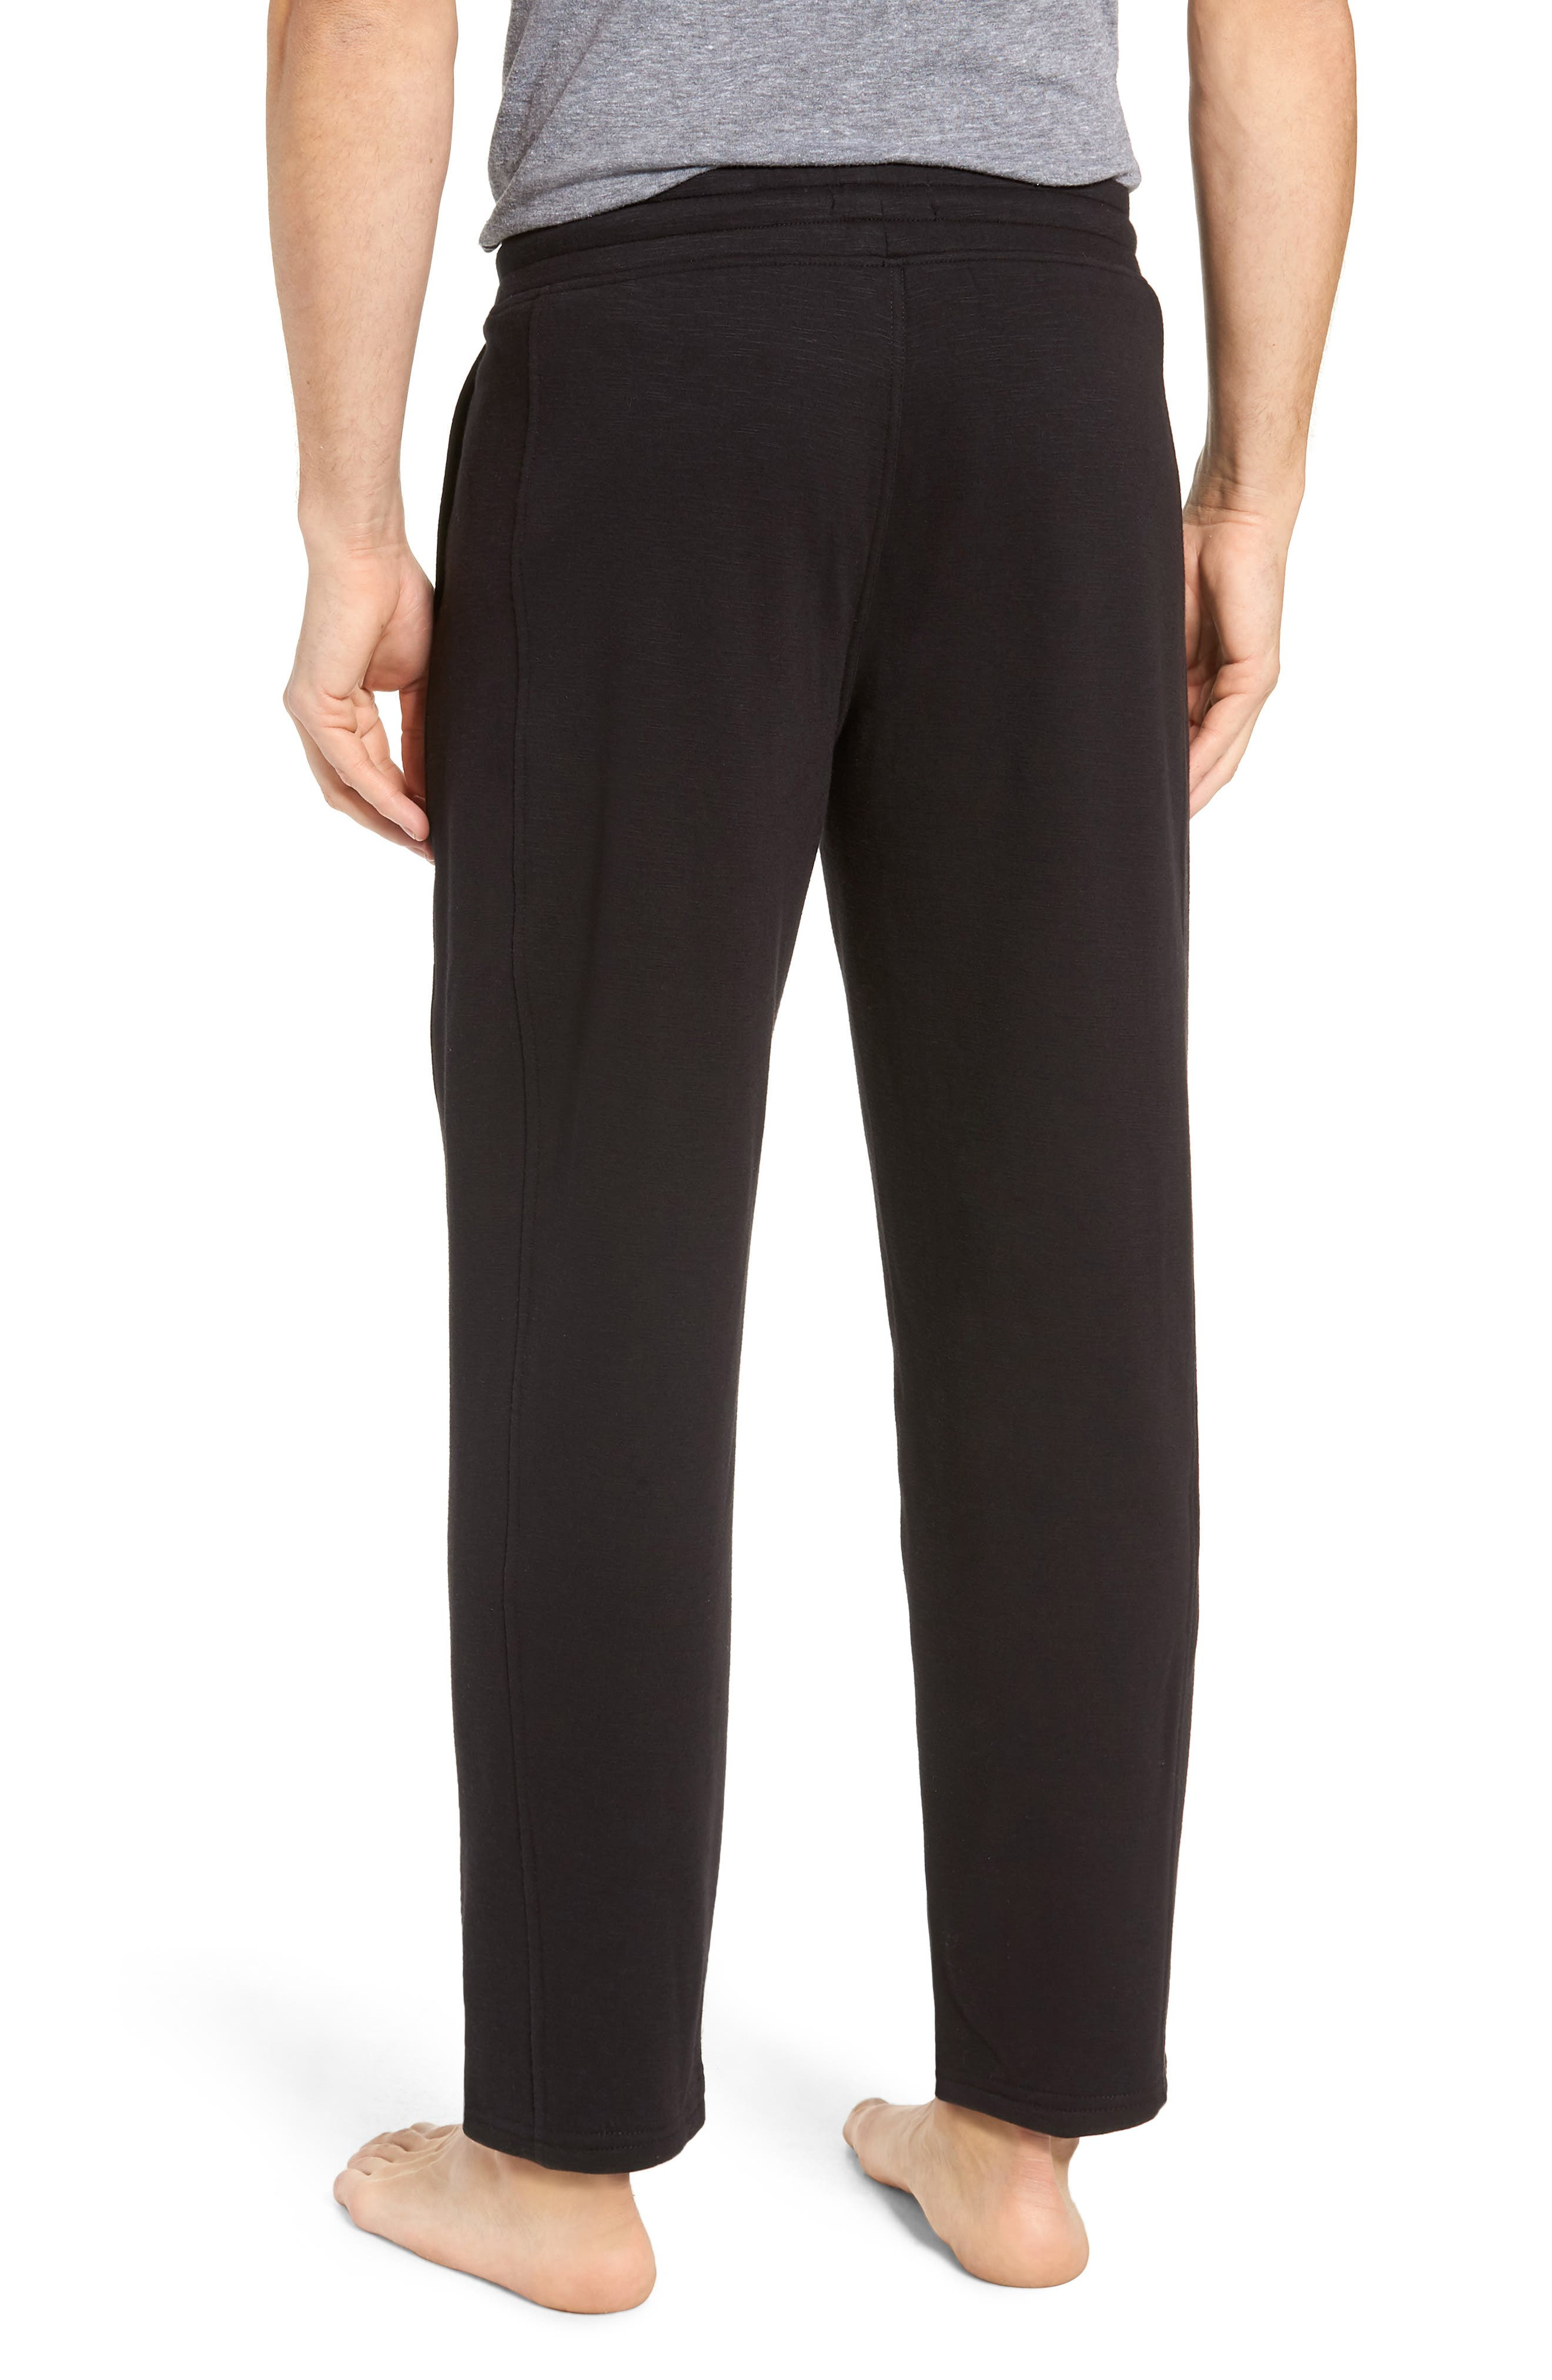 French Terry Moto Pants,                             Alternate thumbnail 2, color,                             BLACK HEATHER